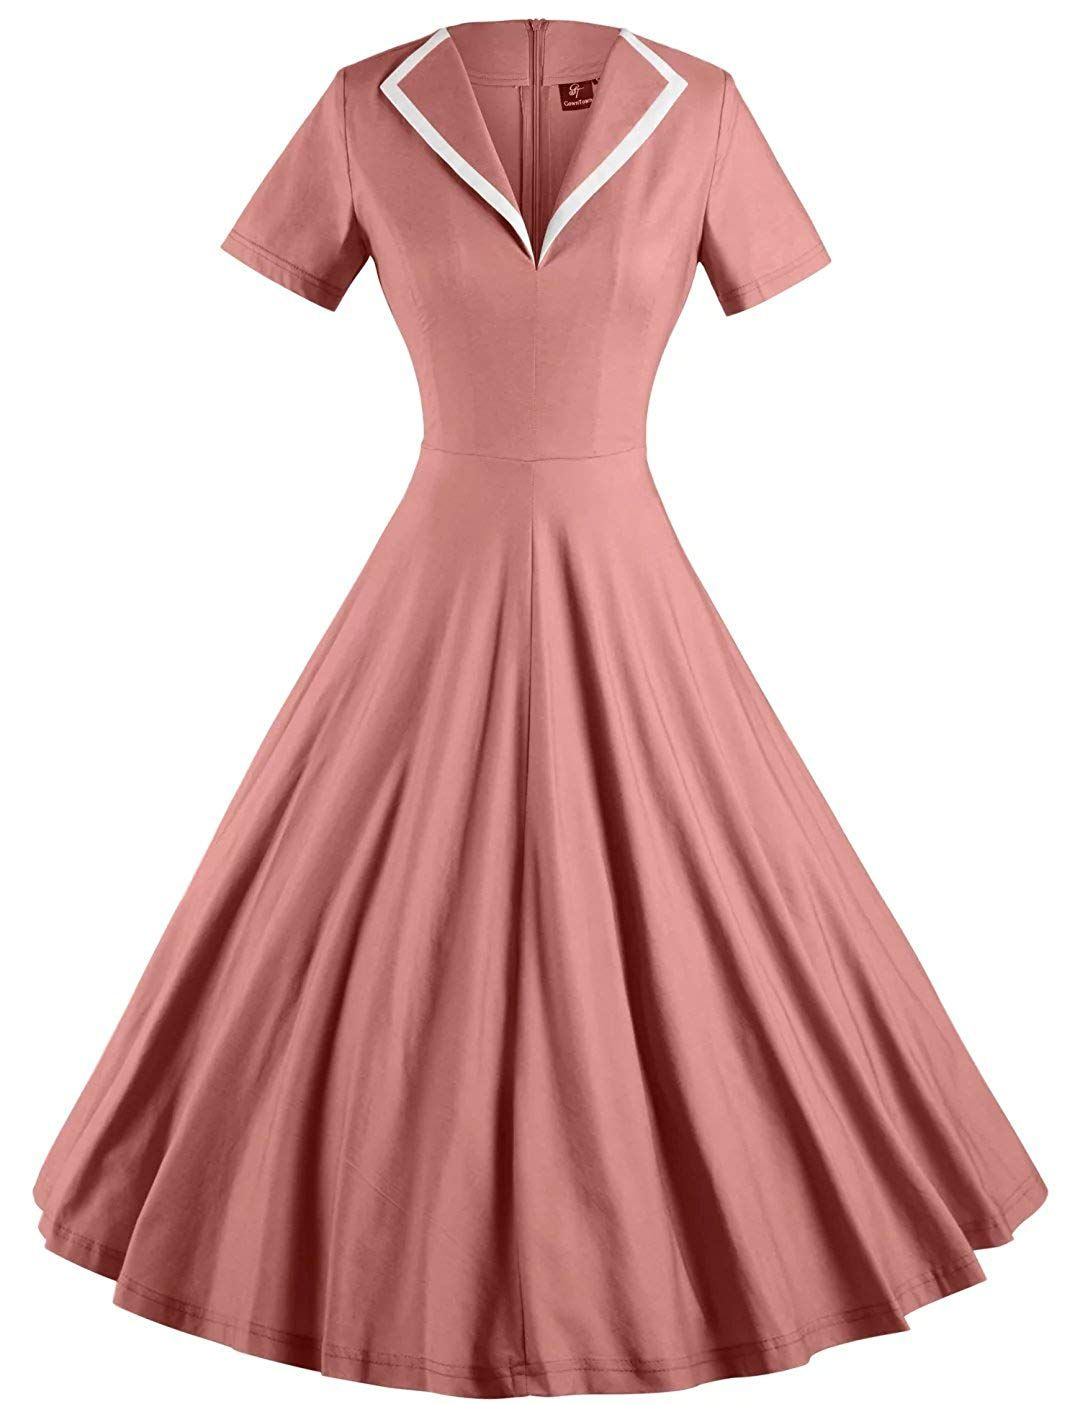 53ee481feb66 1950s Housewife Dress   50s Day Dresses GownTown Womens 1950s Retro Vintage  V-Neck Party Swing Dress $35.98 AT vintagedancer.com